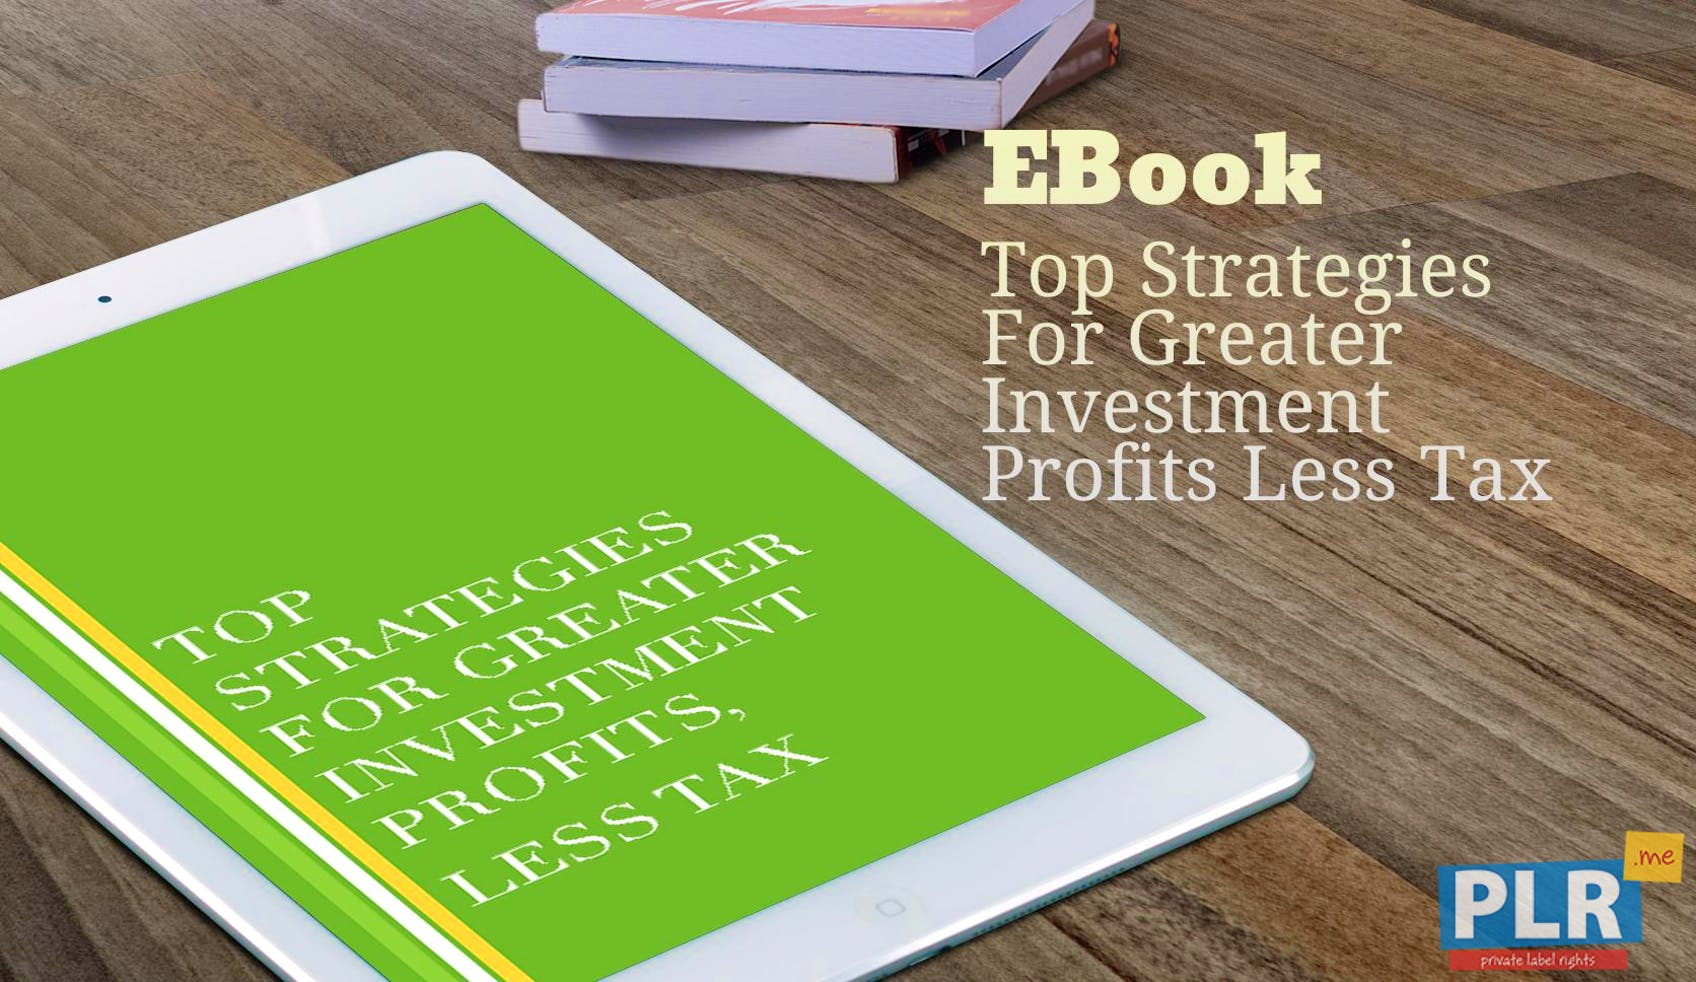 Top Strategies For Greater Investment Profits Less Tax